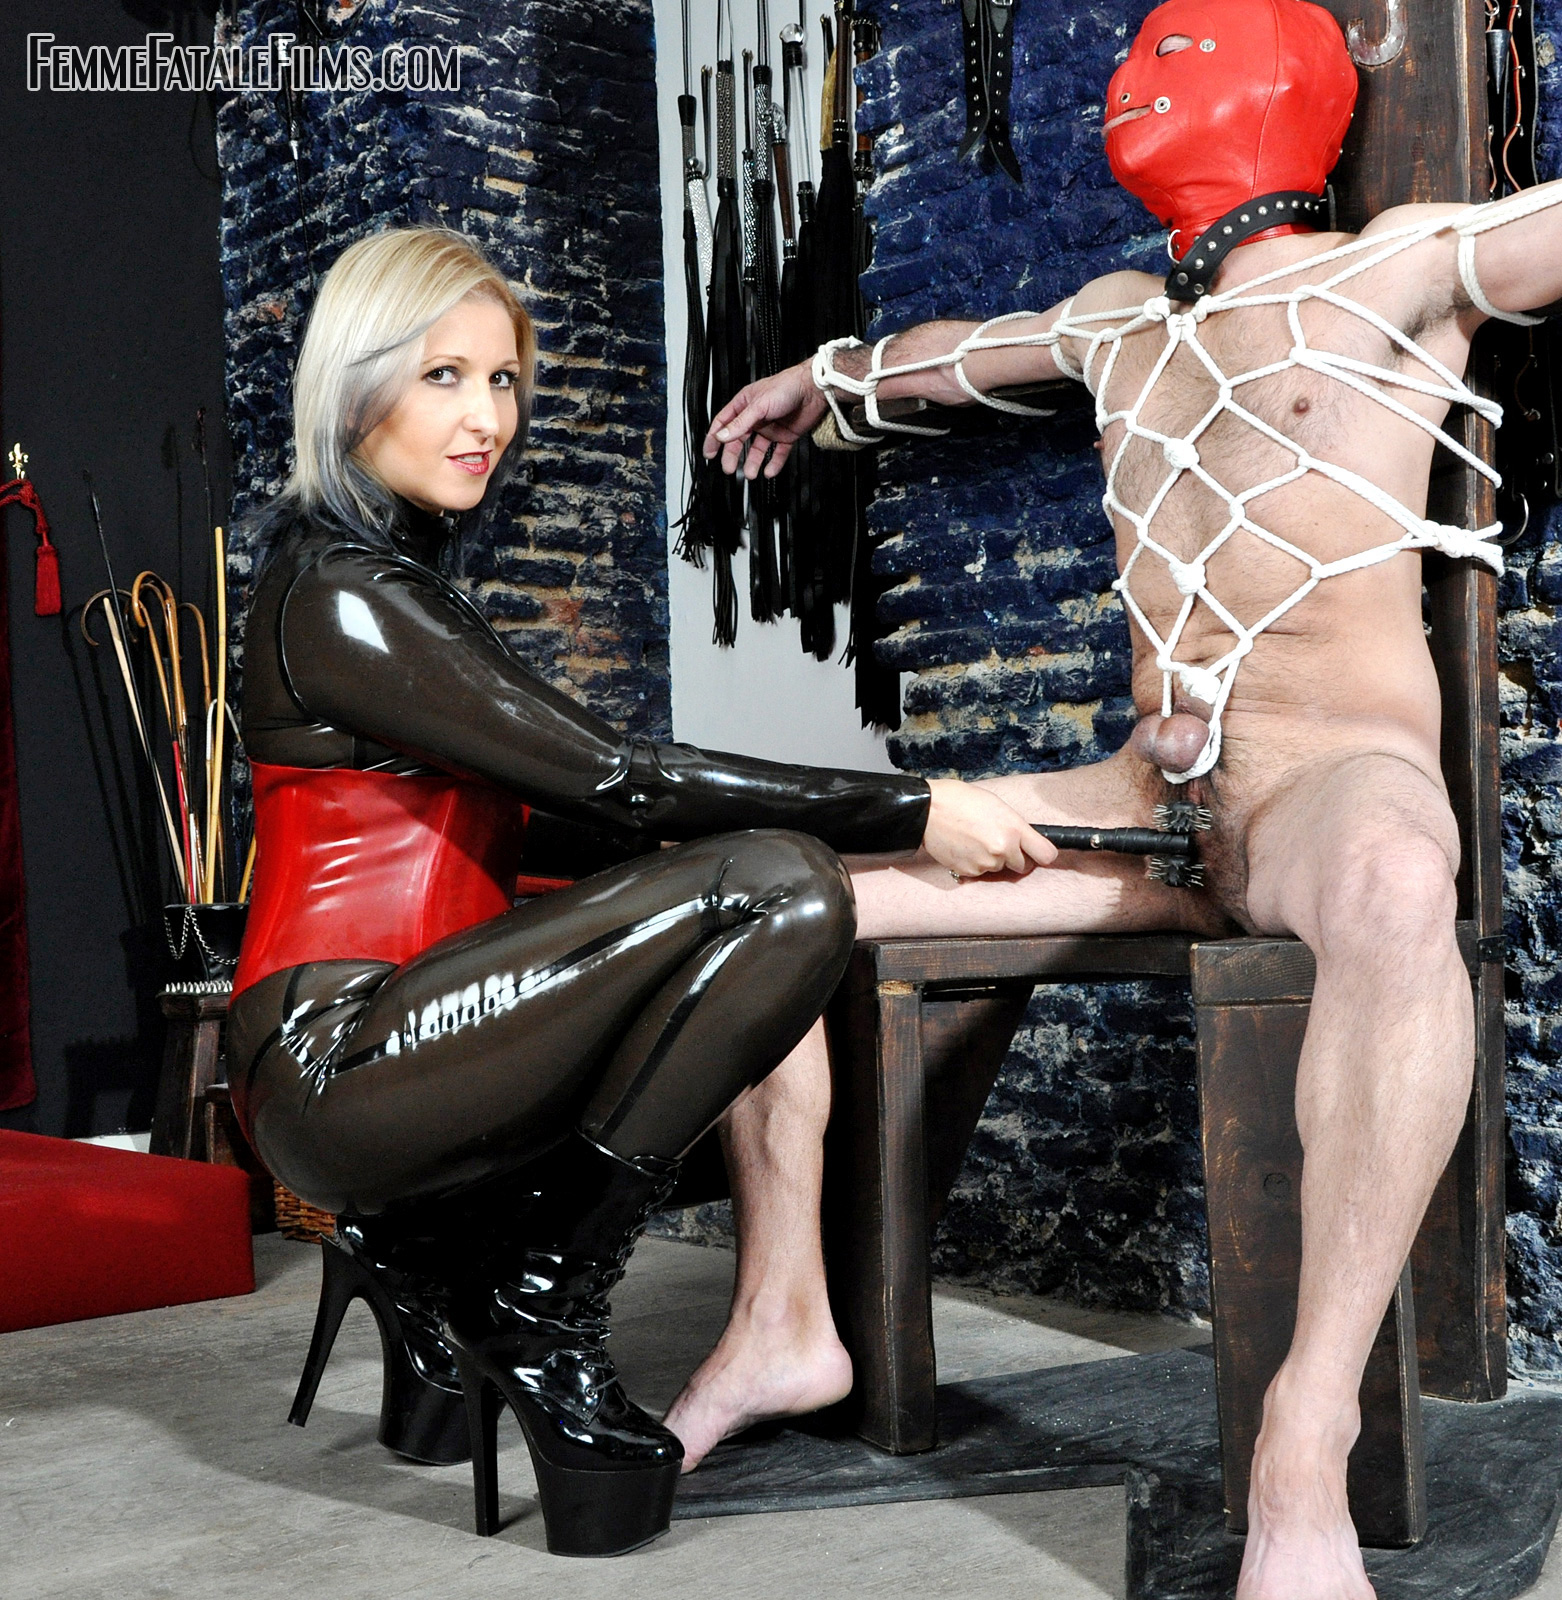 Young femdom galleries, tight braces raped